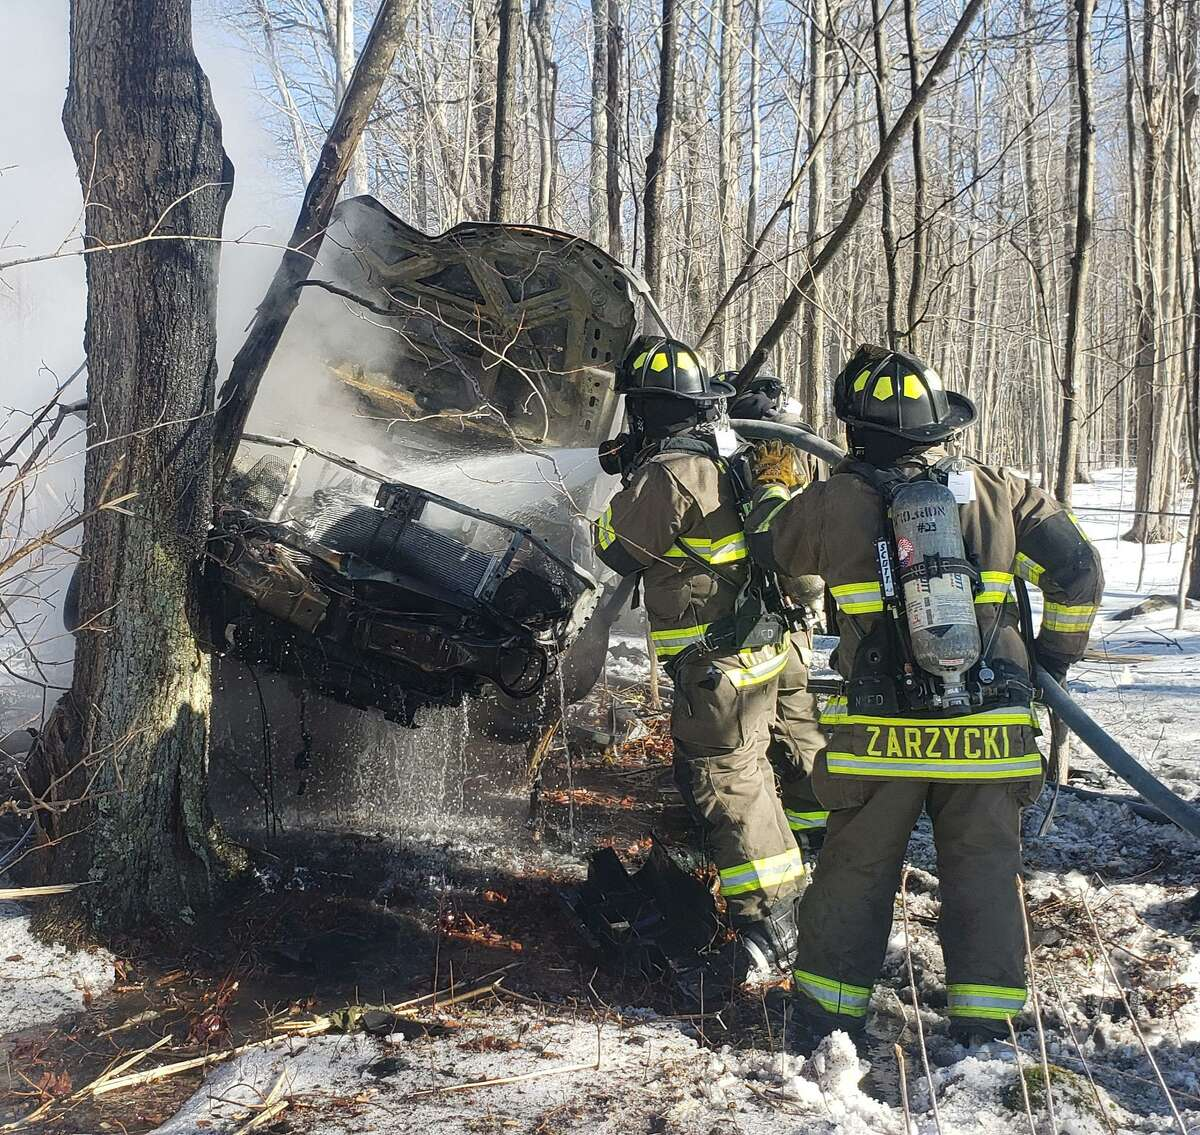 Firefighters in Norfolk responded to a car accident on Route 44 Sunday afternoon.